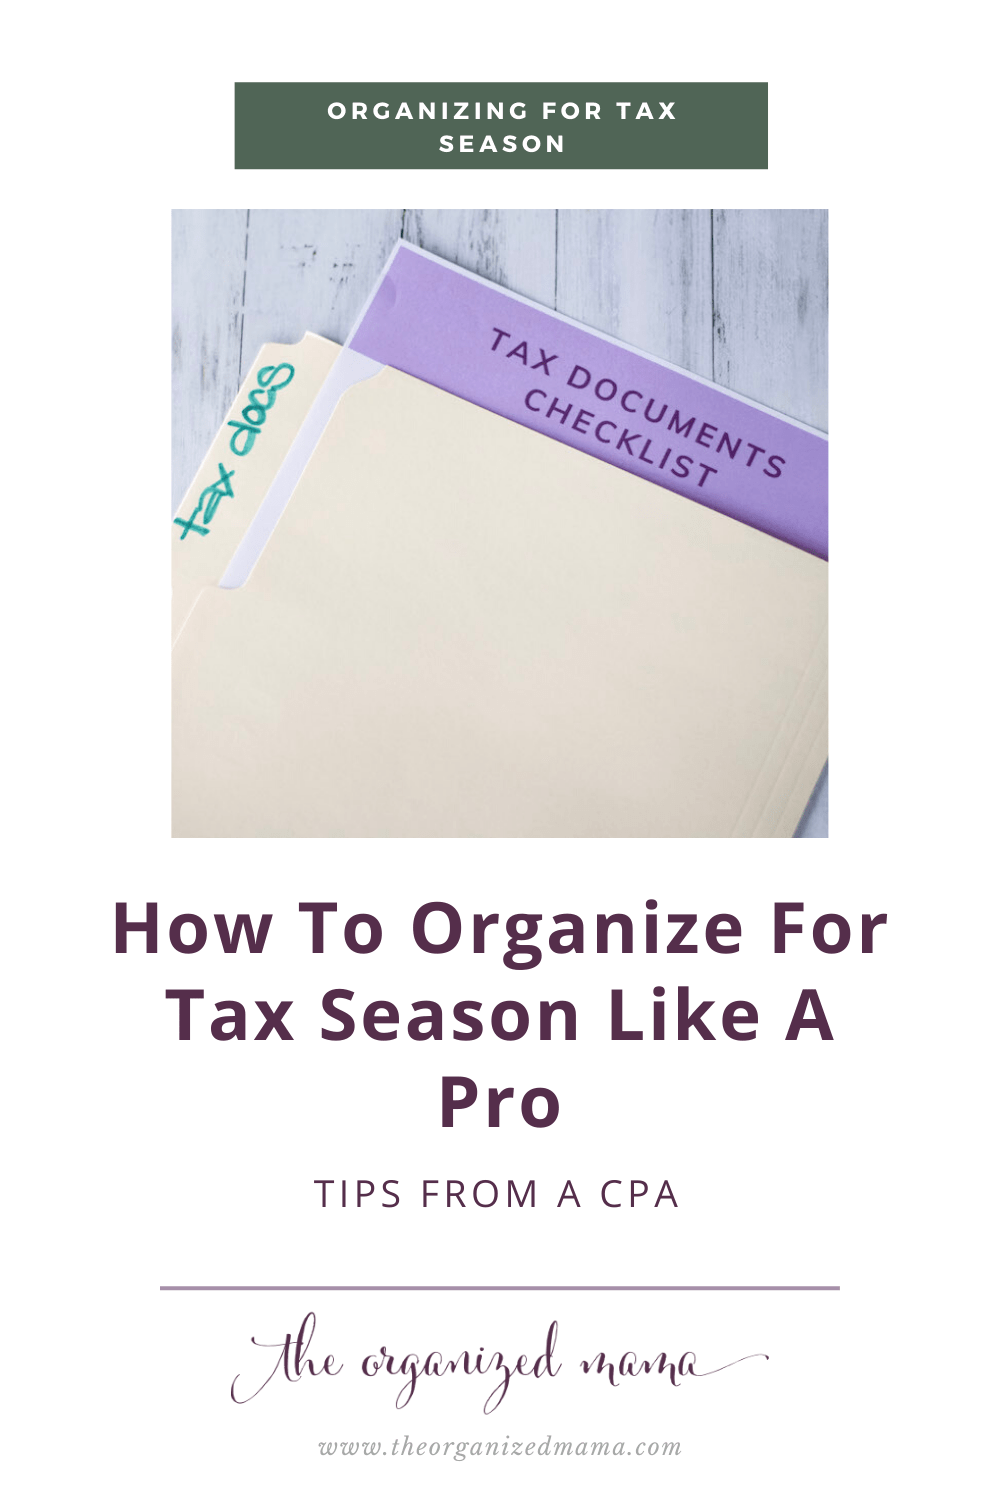 how to organize for tax season like a pro overlay